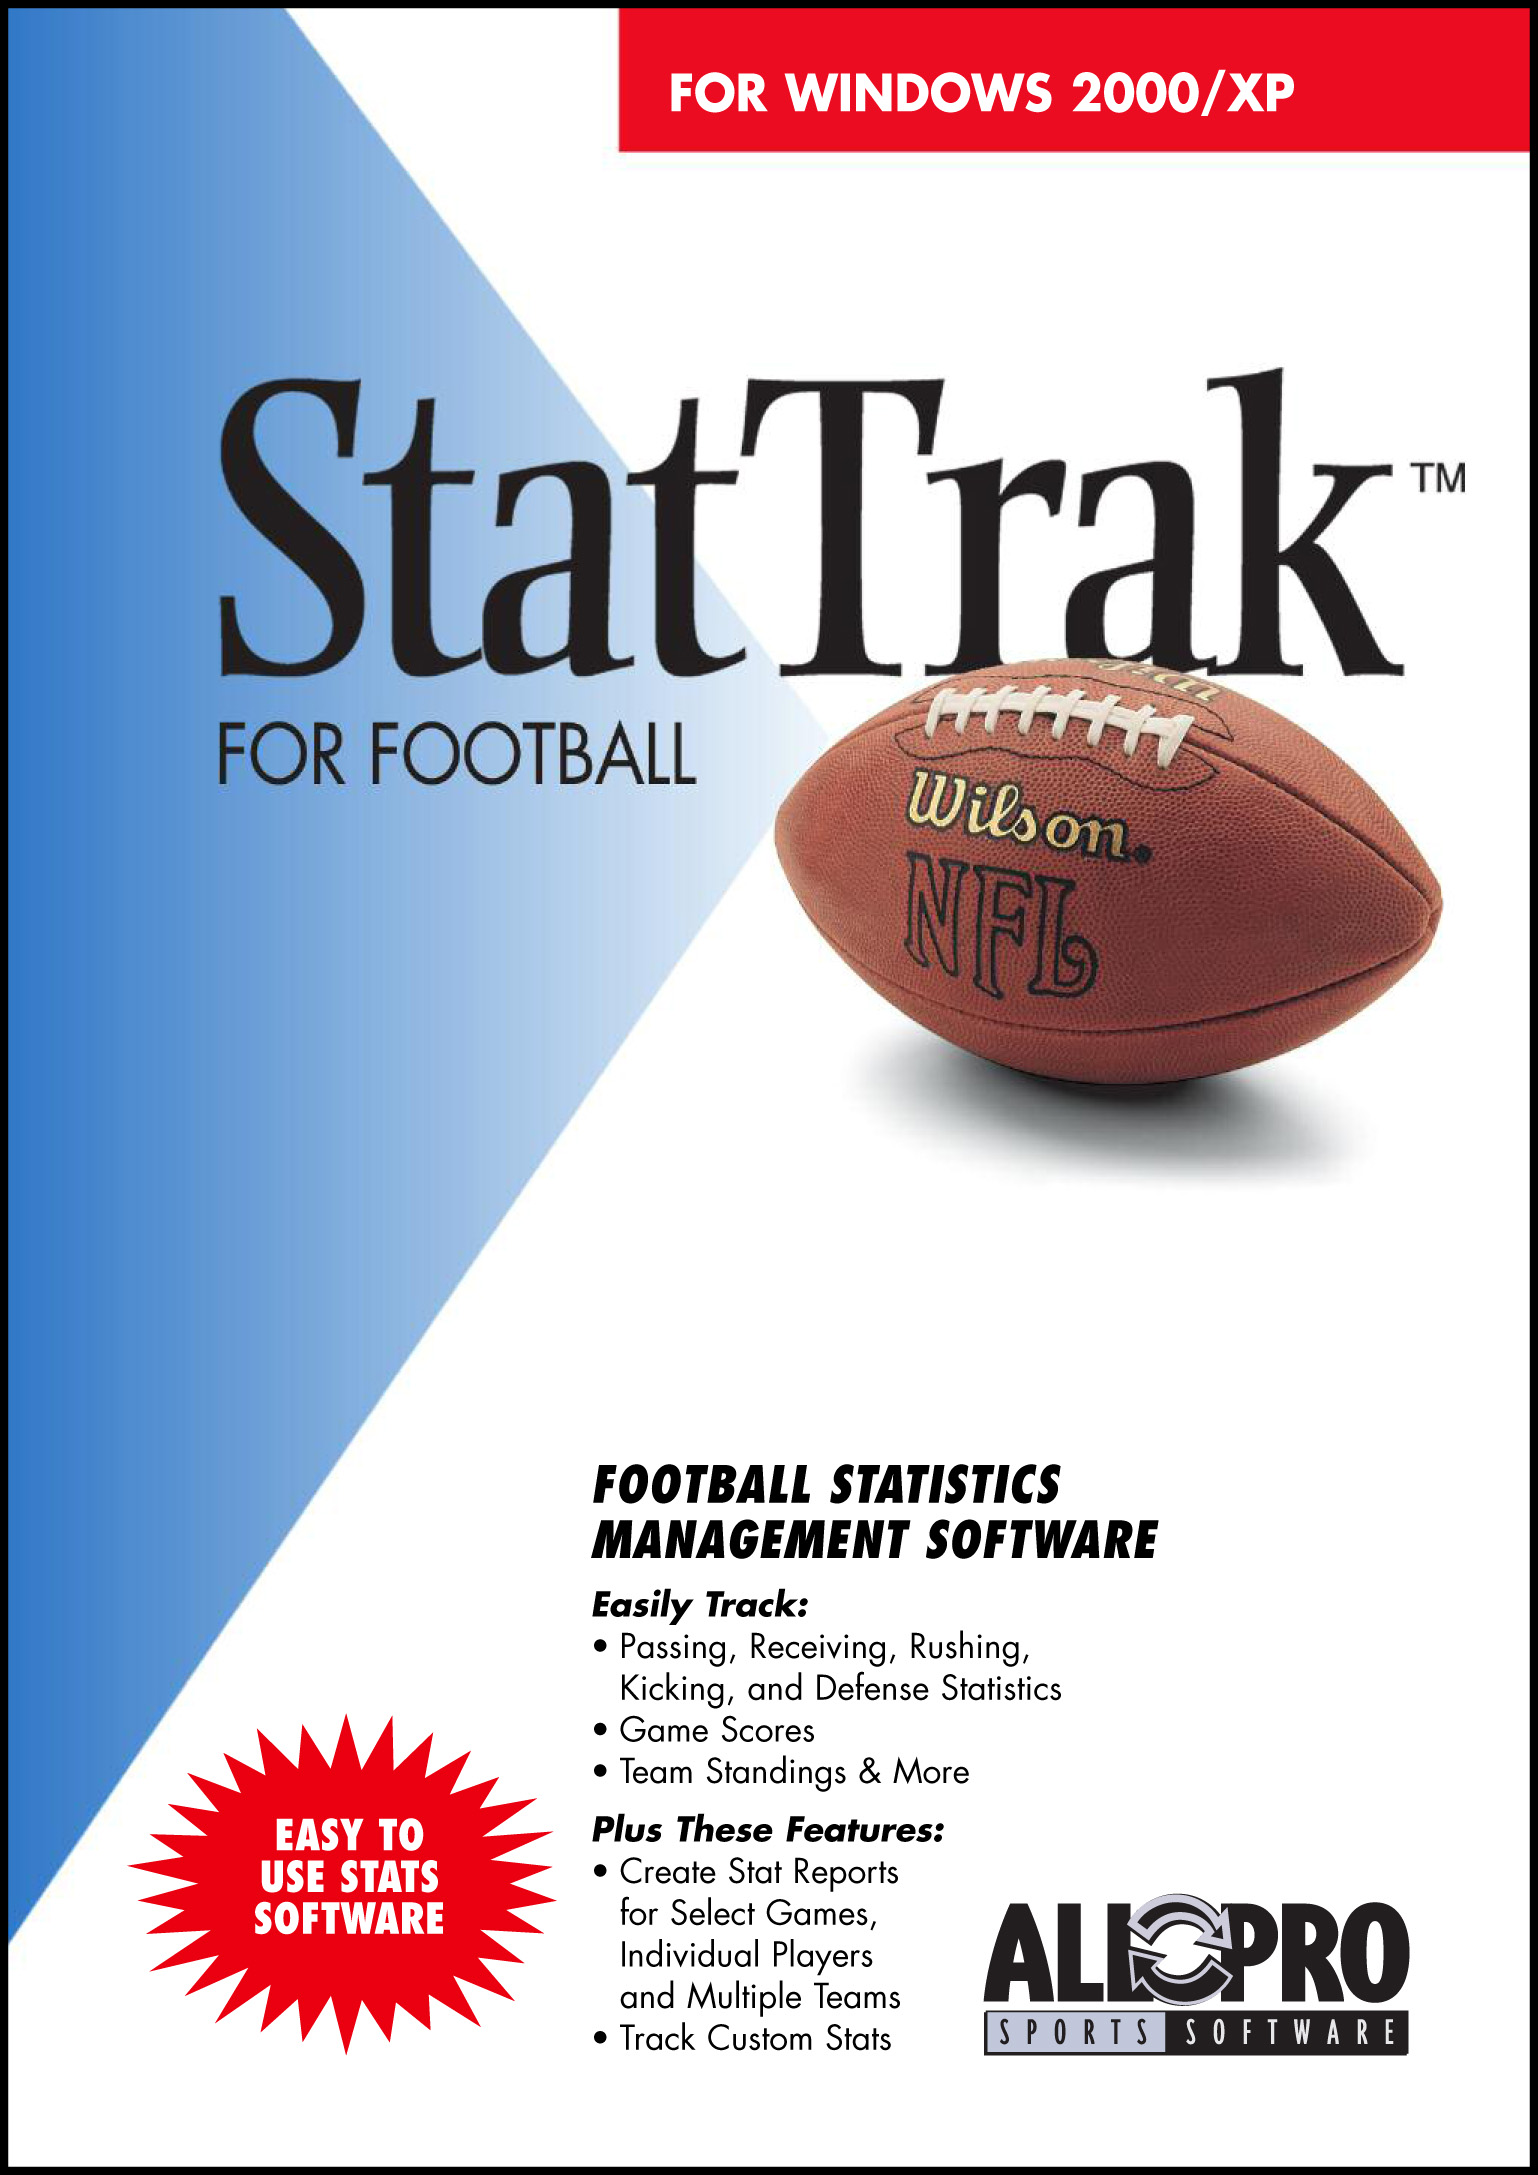 StatTrak for Football - football stats software, stat software, stats software, football software, footb - StatTrak for Football software is a complete stats program with many options.